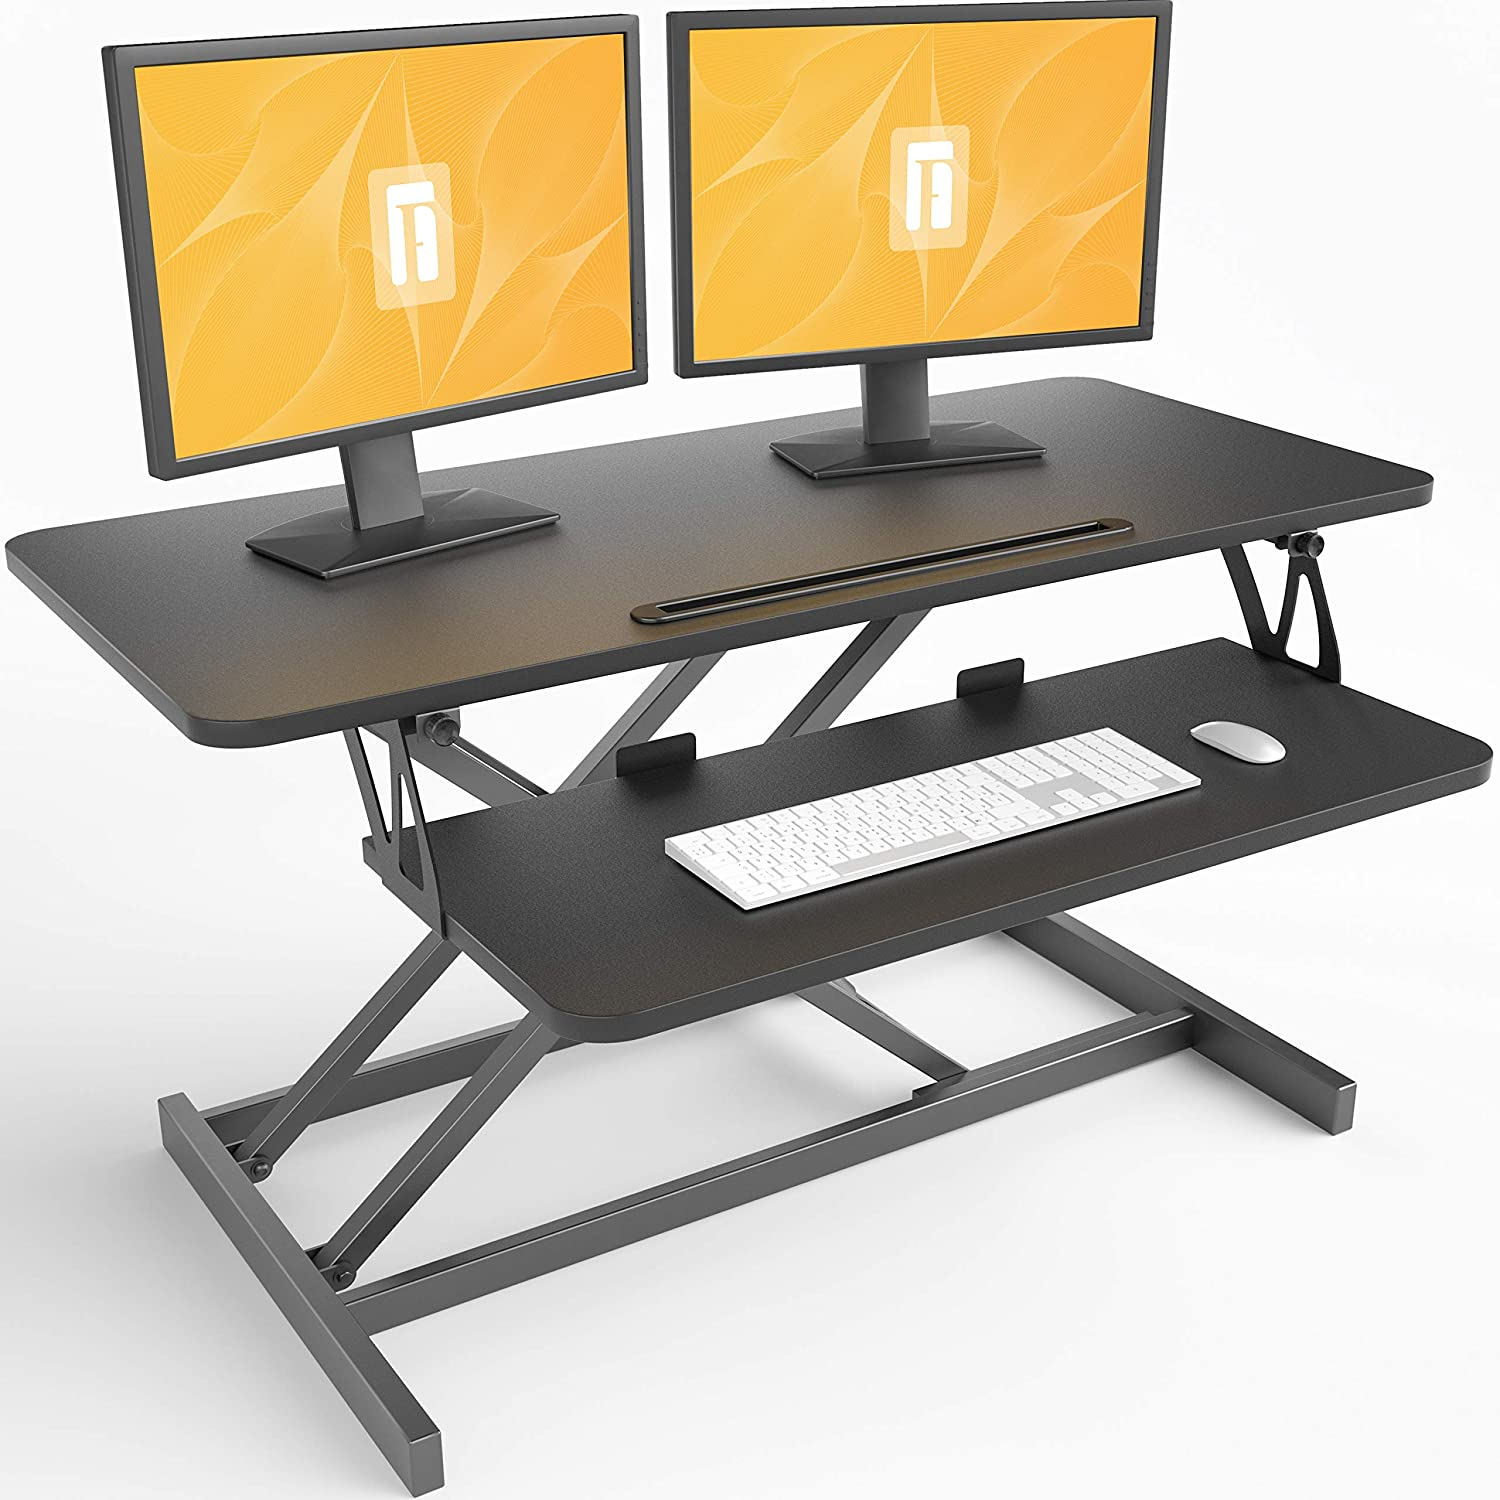 Review of FEZIBO Standing Desk Converter 36 inches Sit Stand Desk Riser